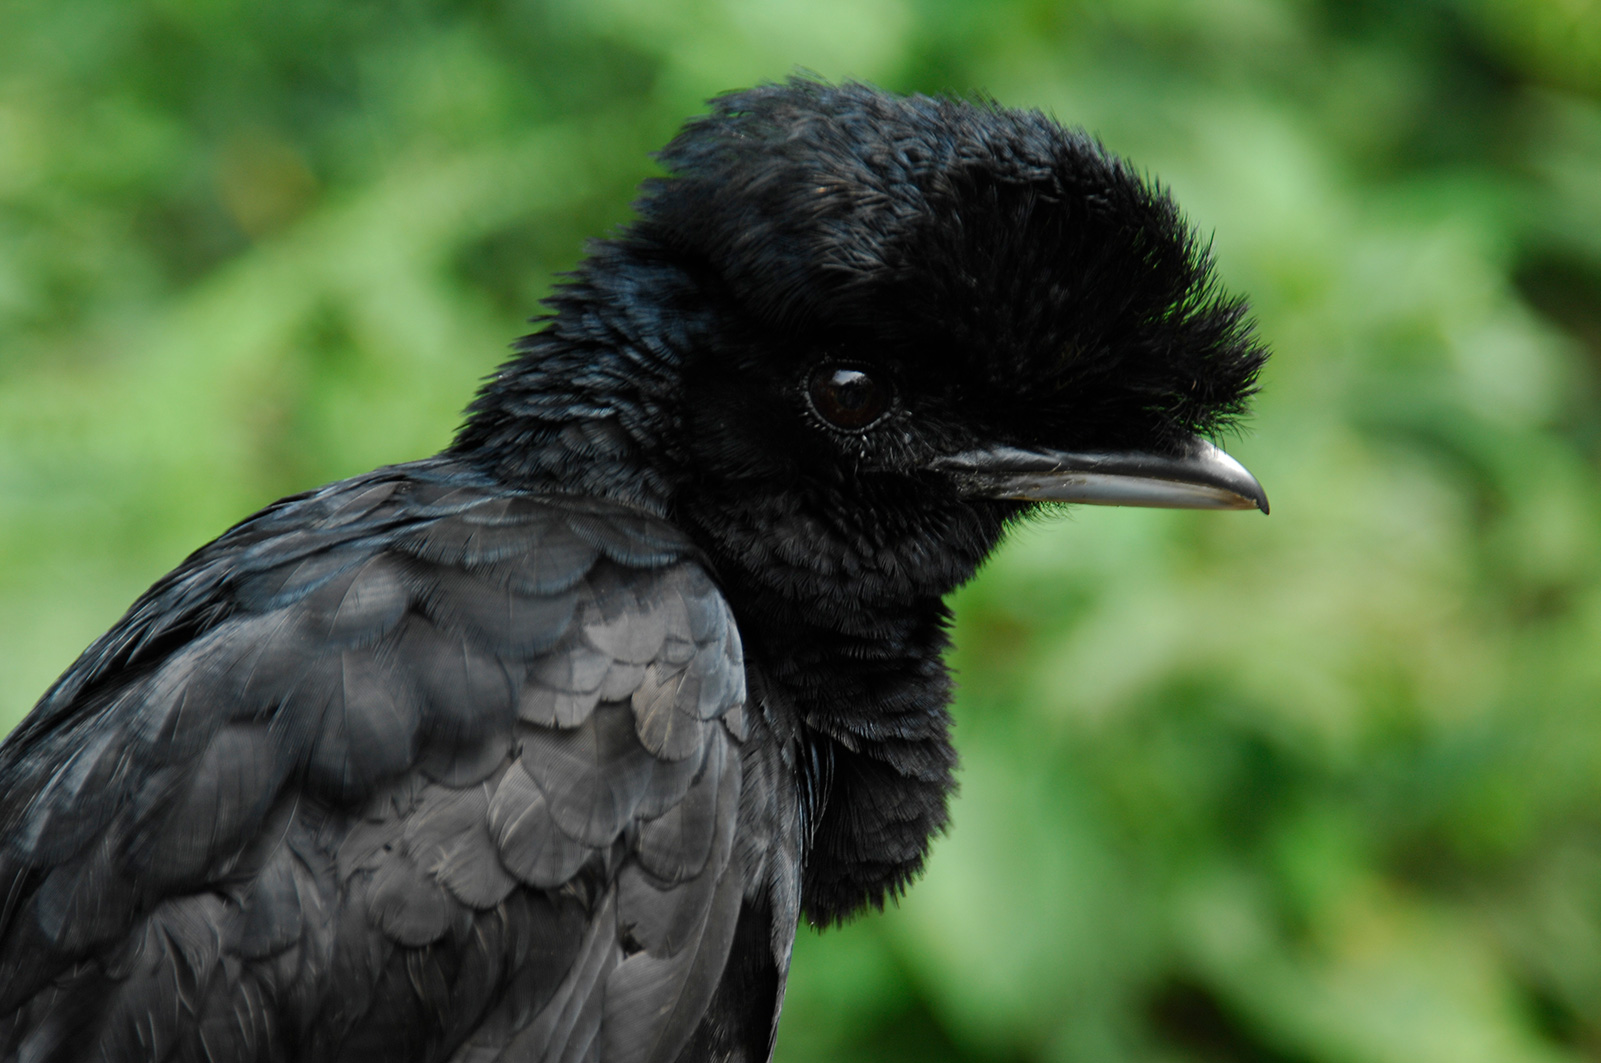 A close up of an Umbrellabird